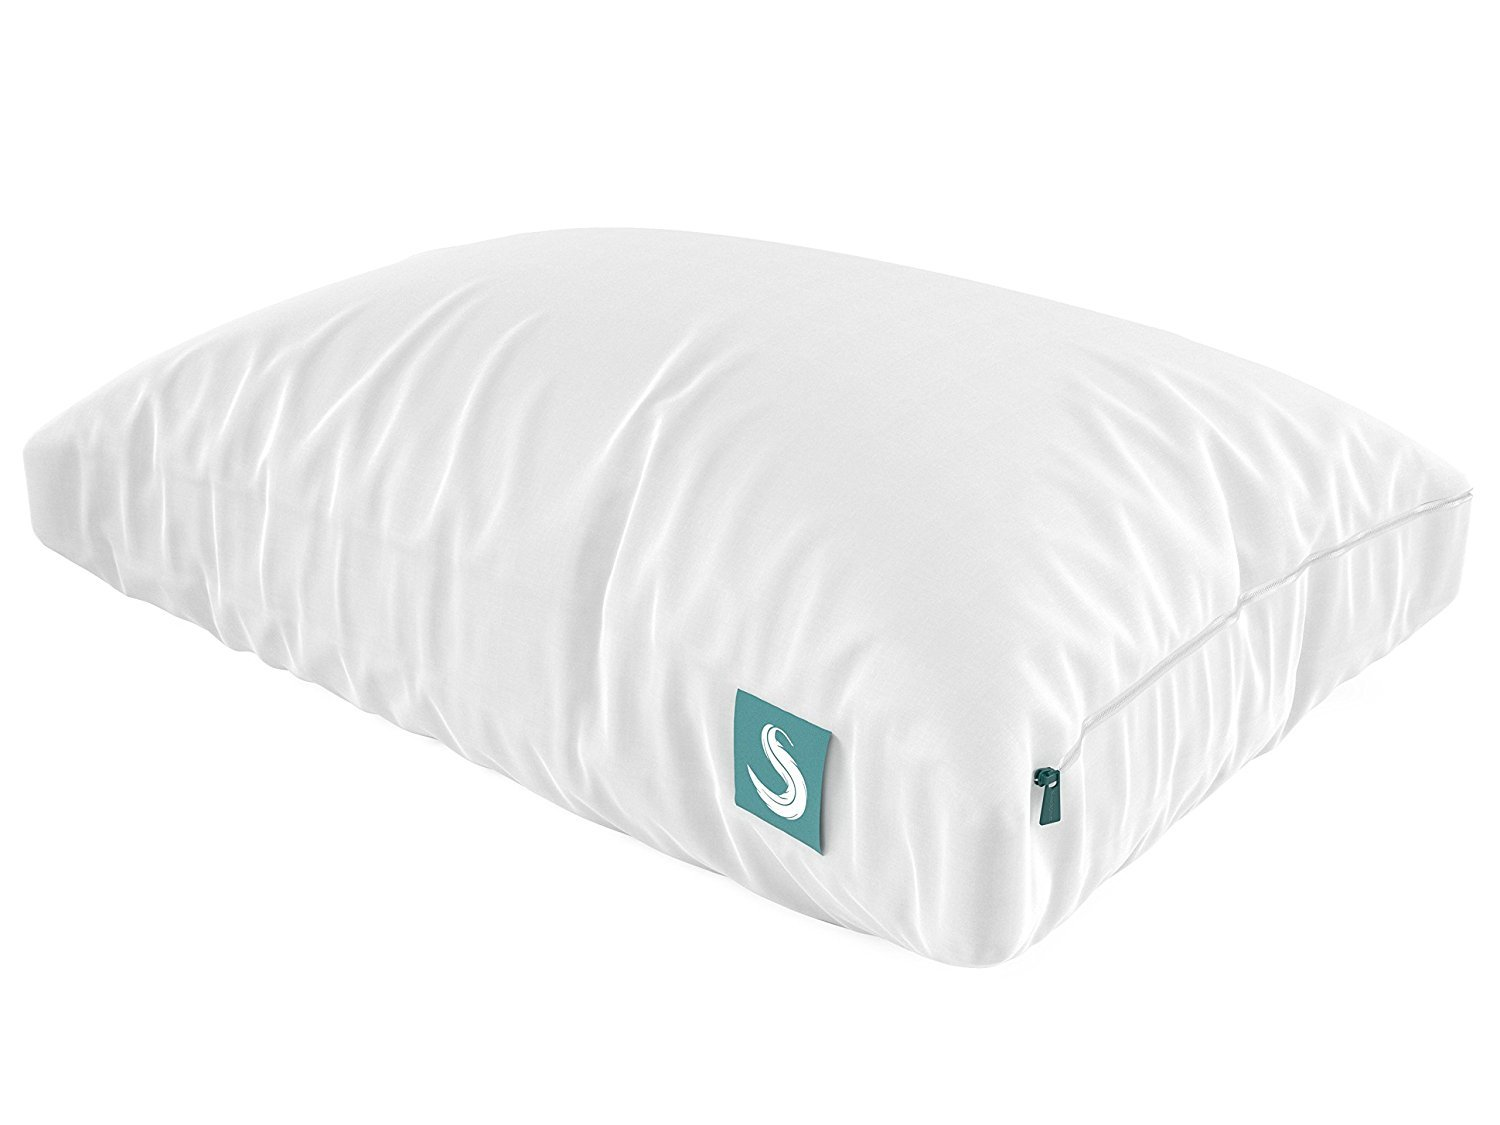 Sleepgram Pillow-Premium Adjustable Loft-Soft Hypoallergenic Microfiber Washable Removable Cover, 18 X 33-King Size sleep pillows Sleep pillows review – buying guide and review for sleep pillows 61EWSbps8kL